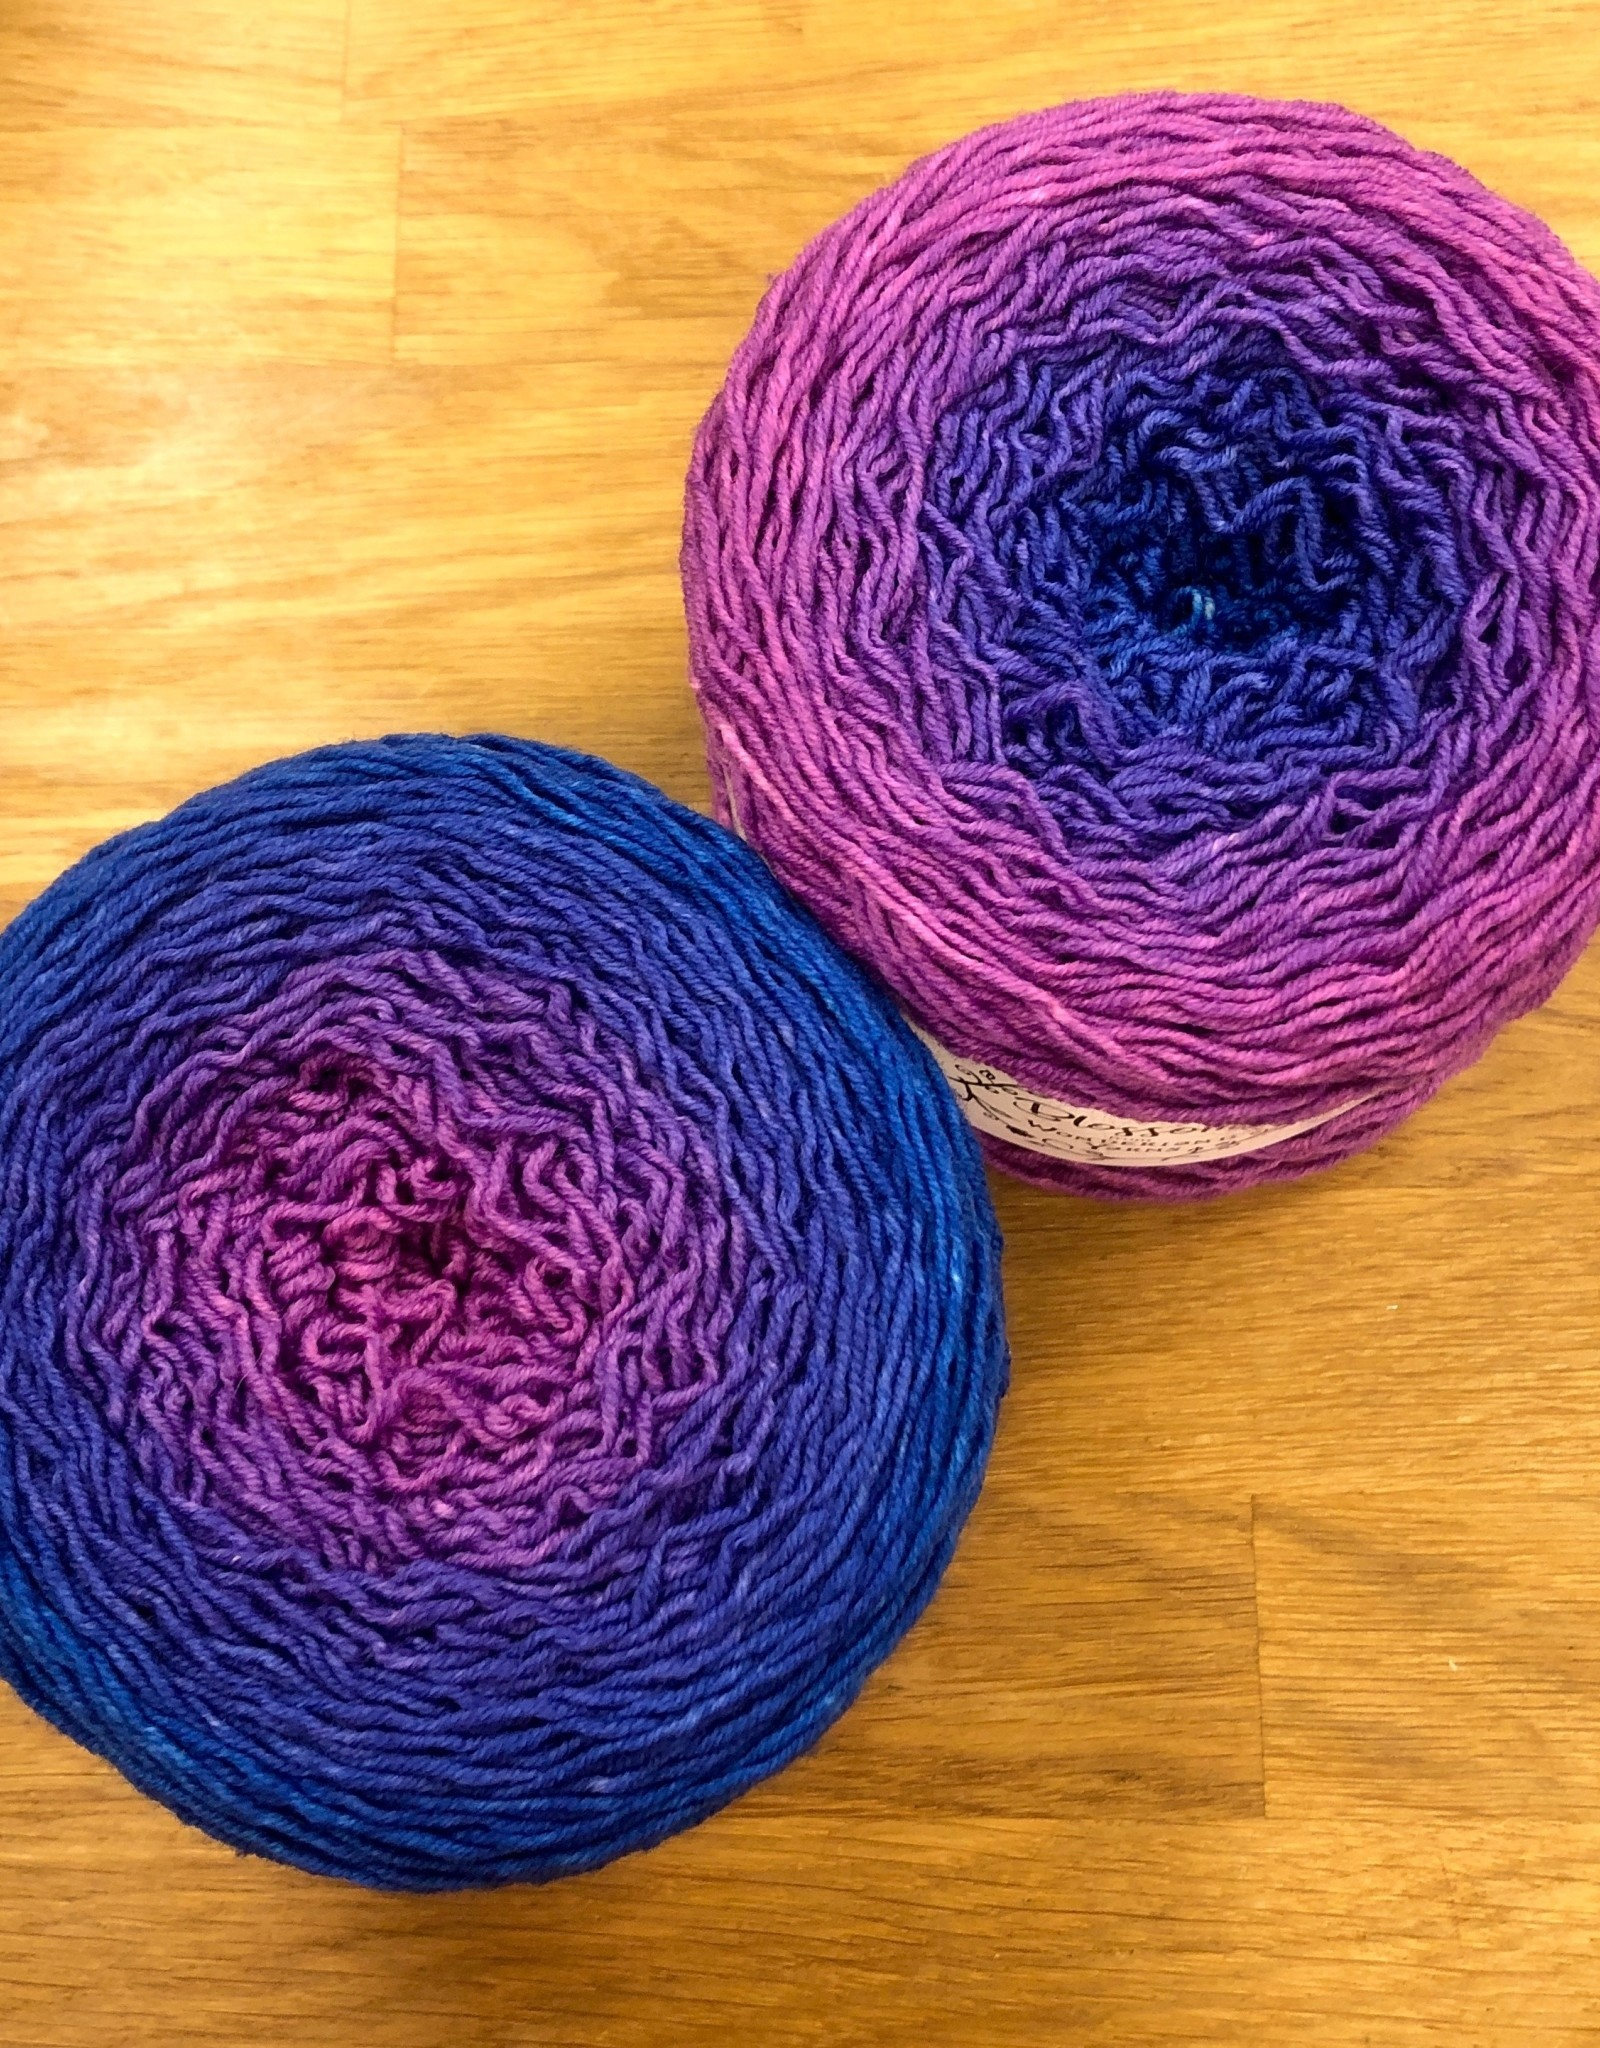 Wonderland Yarn Blossoms Gradients by Wonderland Yarns